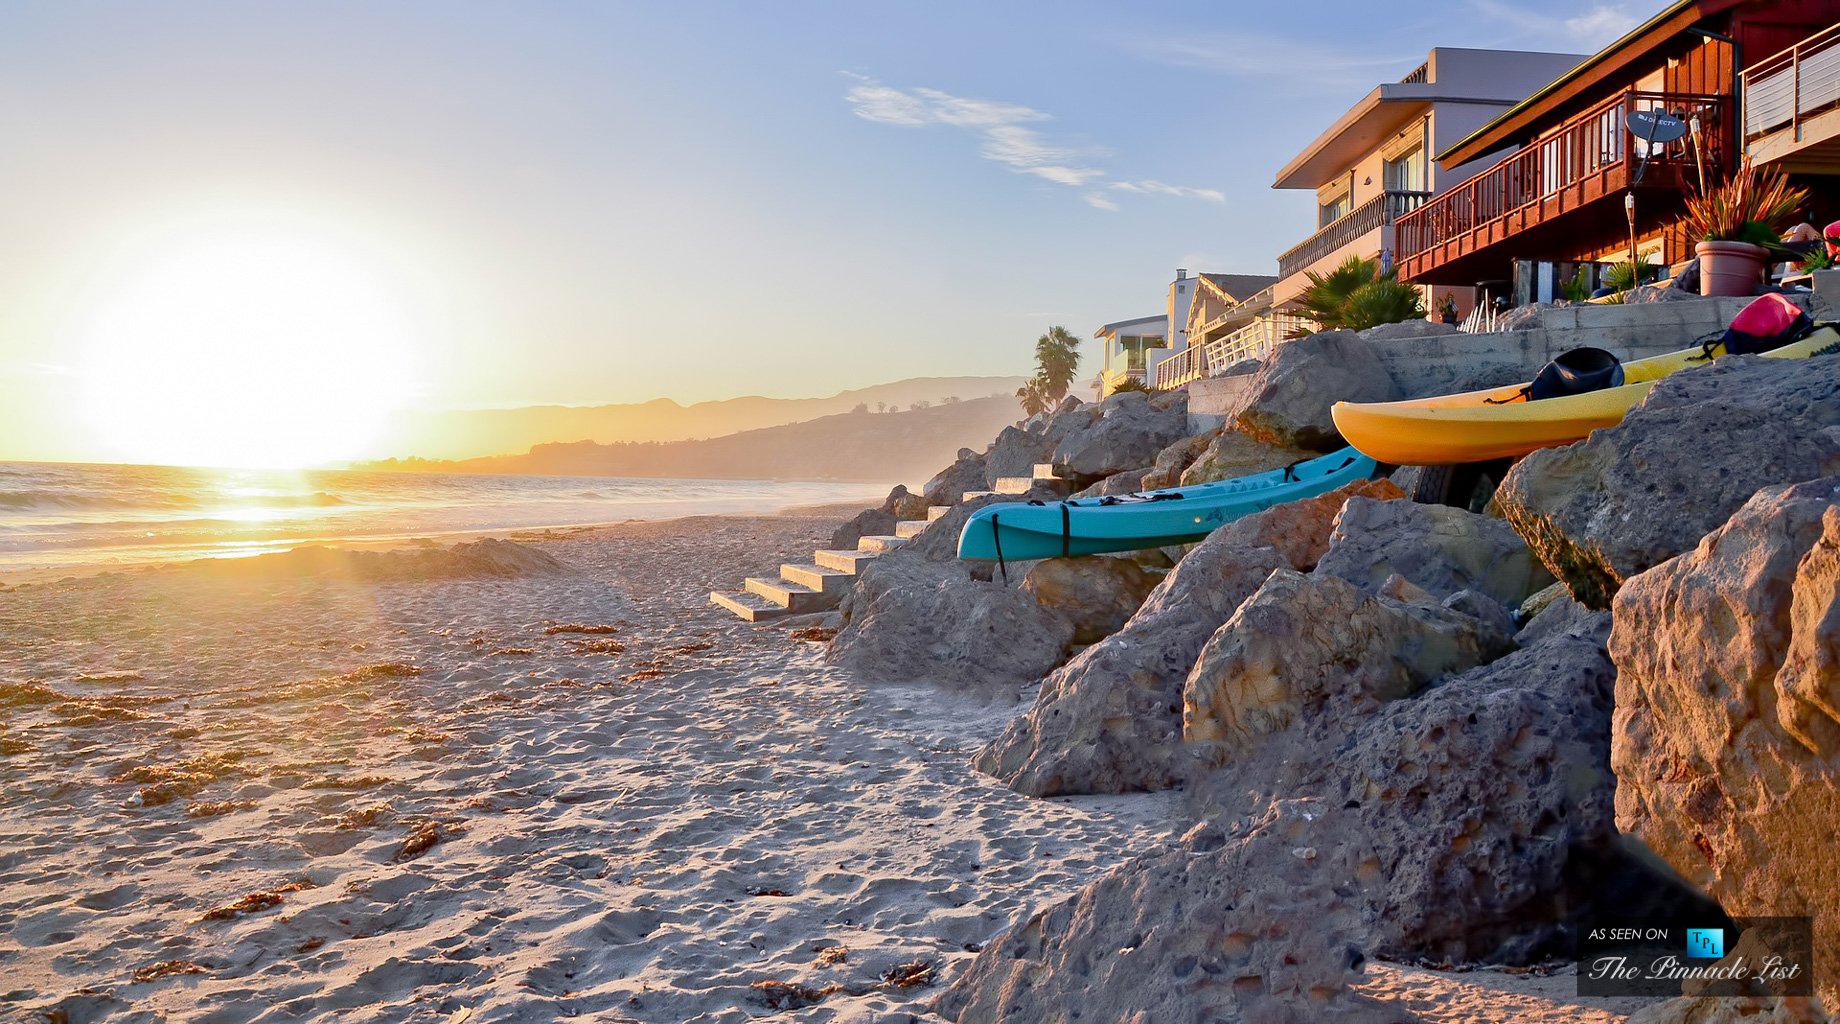 Beachside Living in Malibu - California Coastal Lifestyle of Sun Sand and Surf